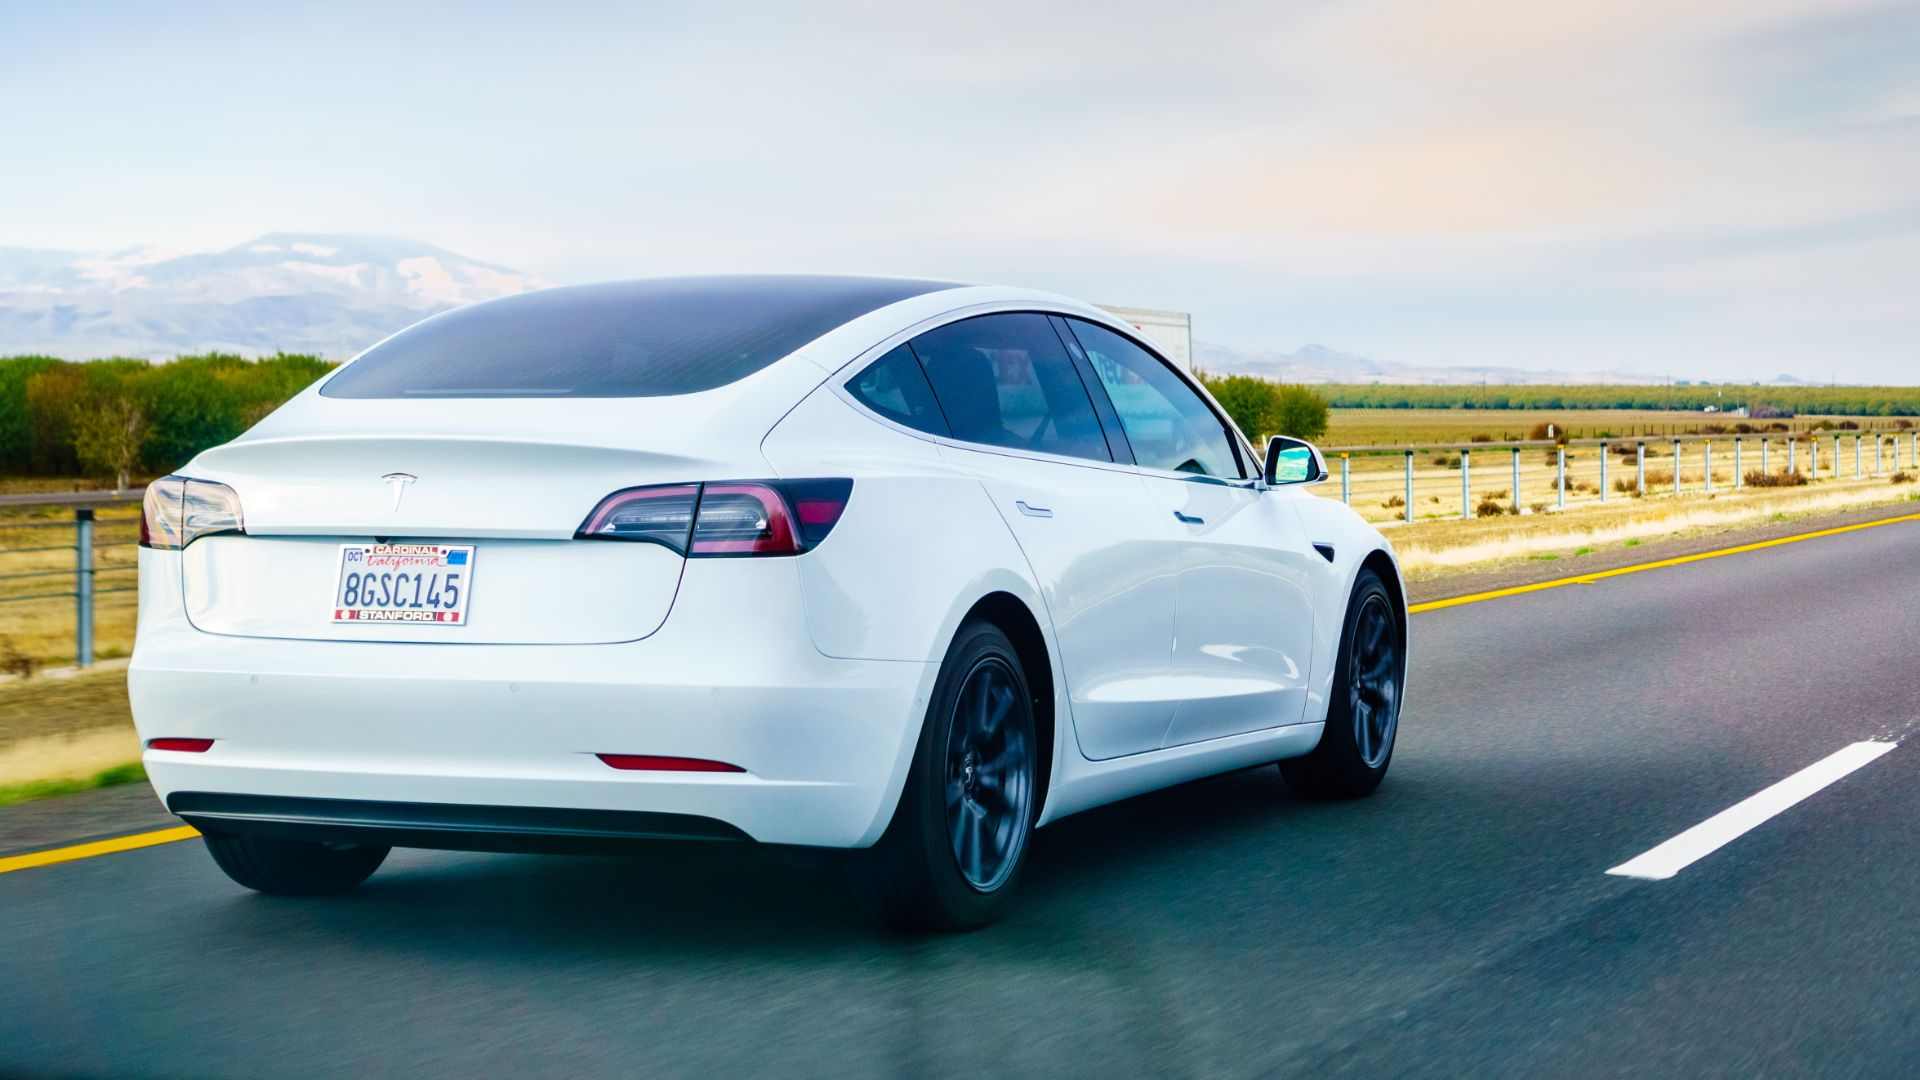 Tesla Moody's carbon assessment